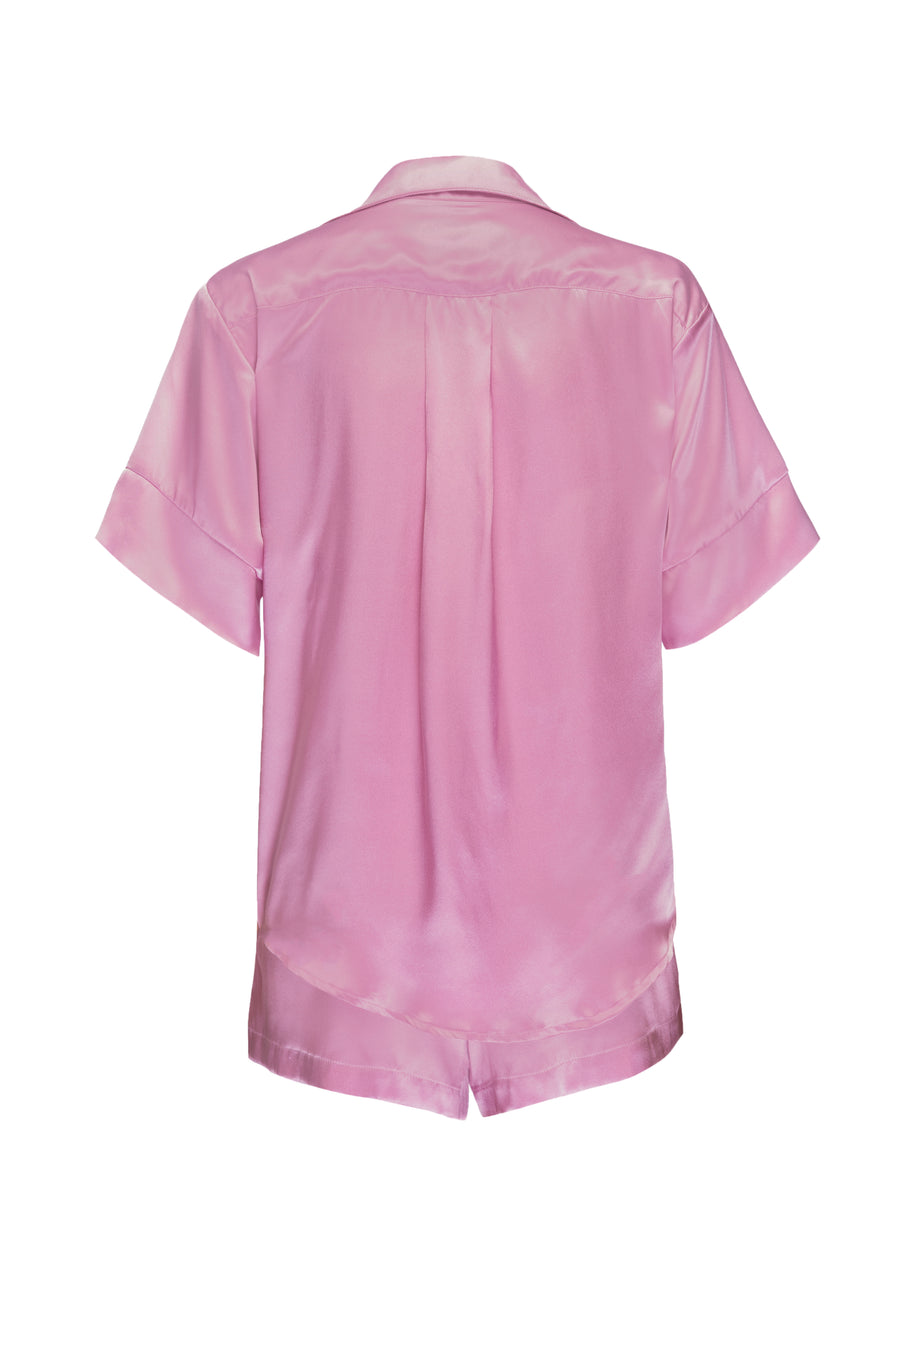 Silk Charmeuse Short Sleeved PJ Top + Short Set: Orchid Pink